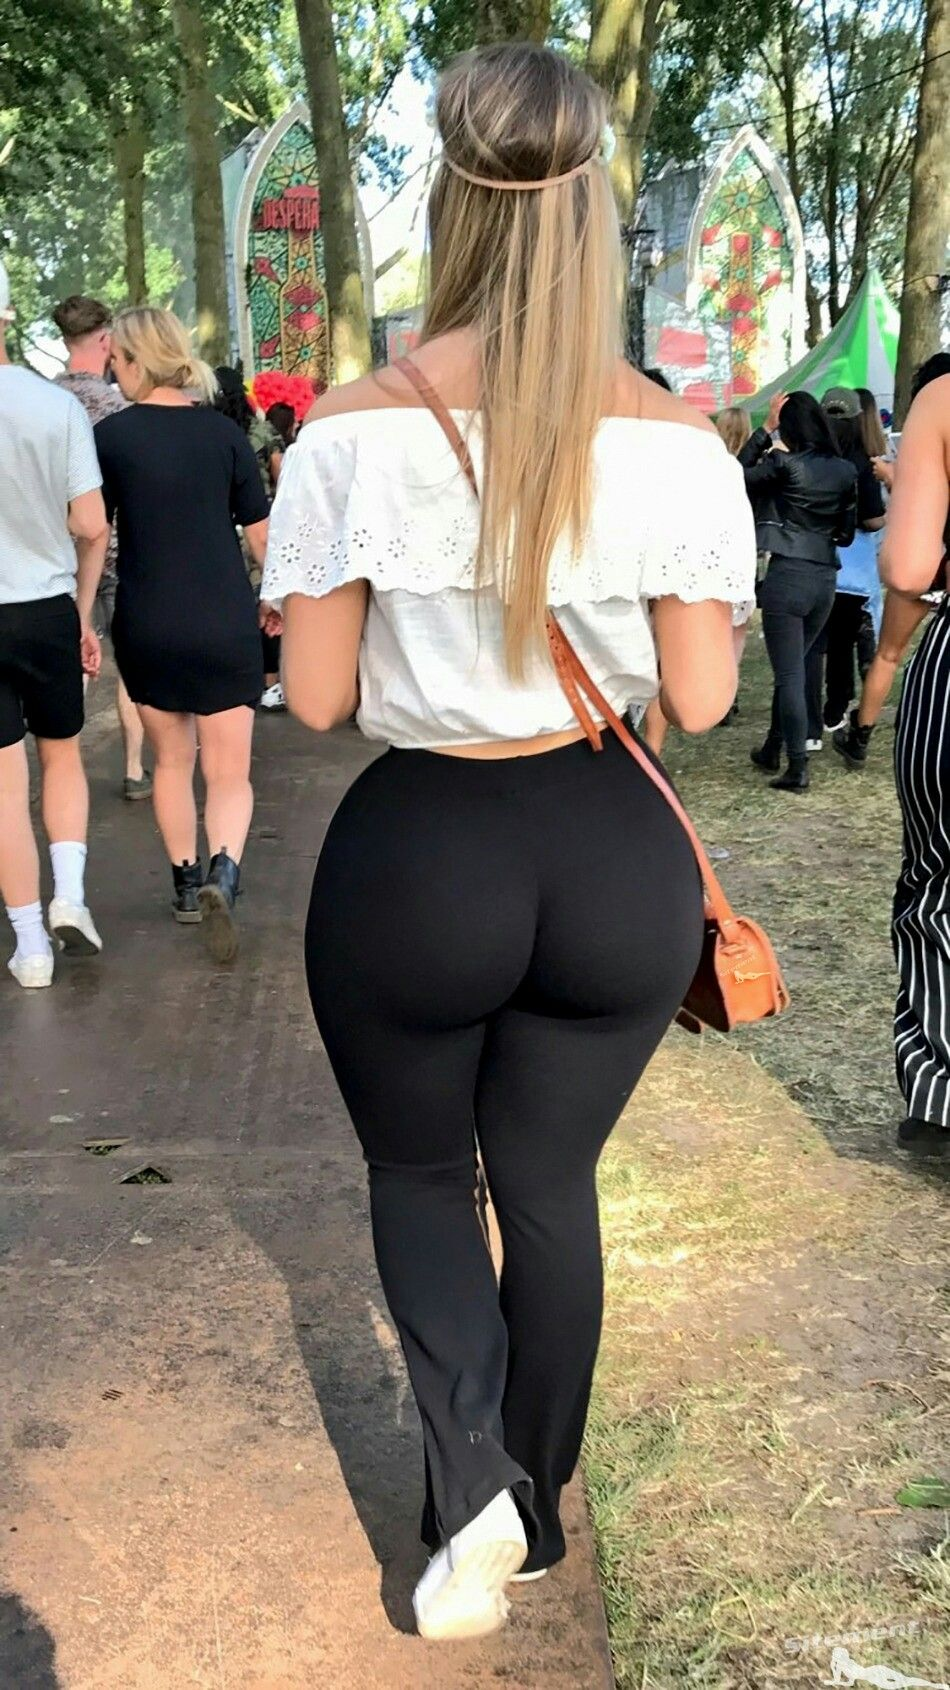 Big Ass White Girl Riding